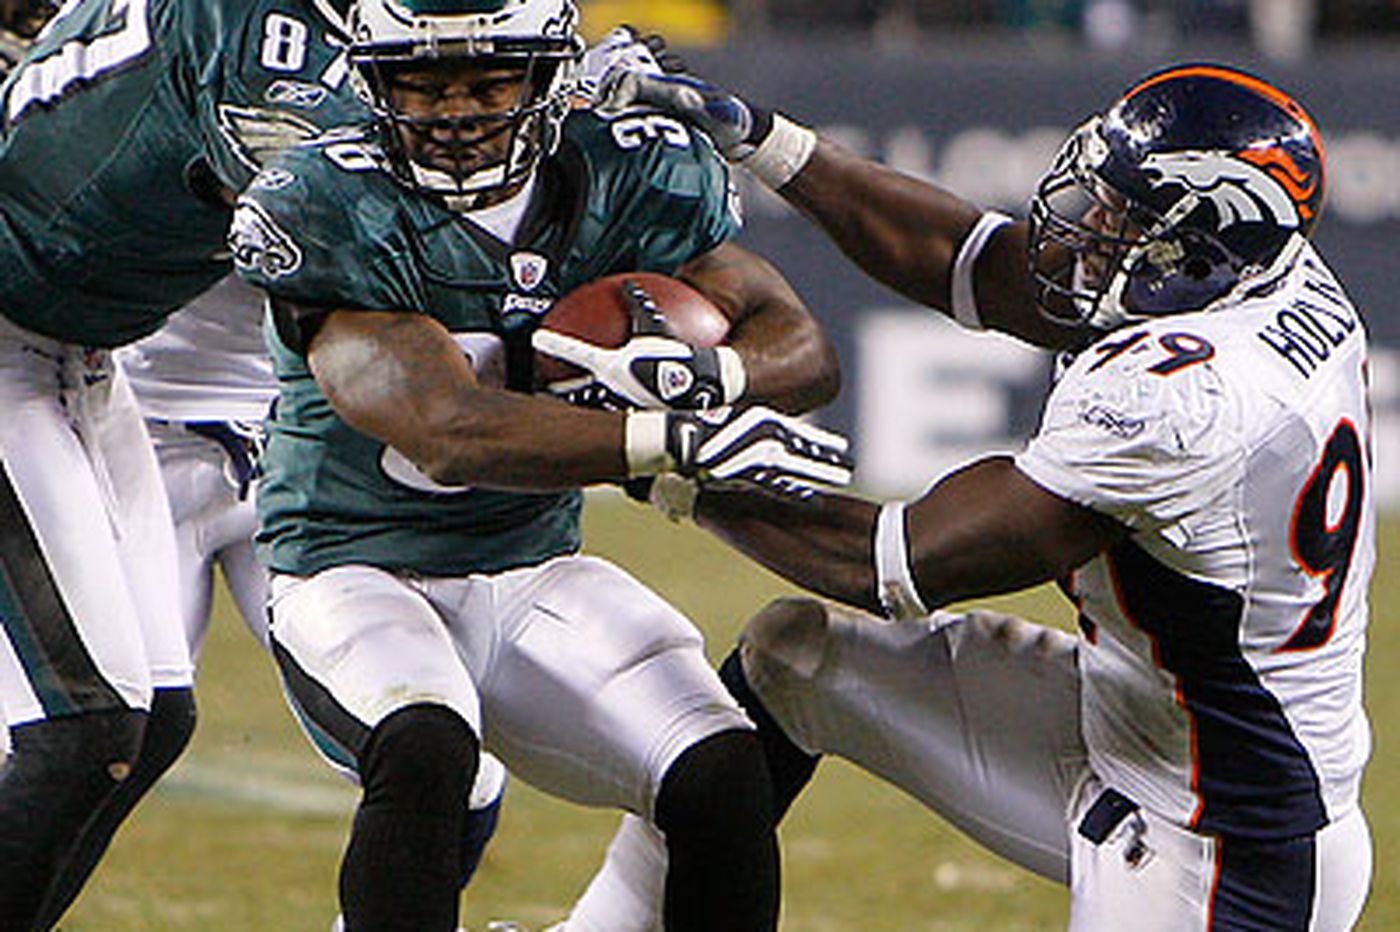 Eagles Notebook: Eagles' Westbrook shakes some rust in return